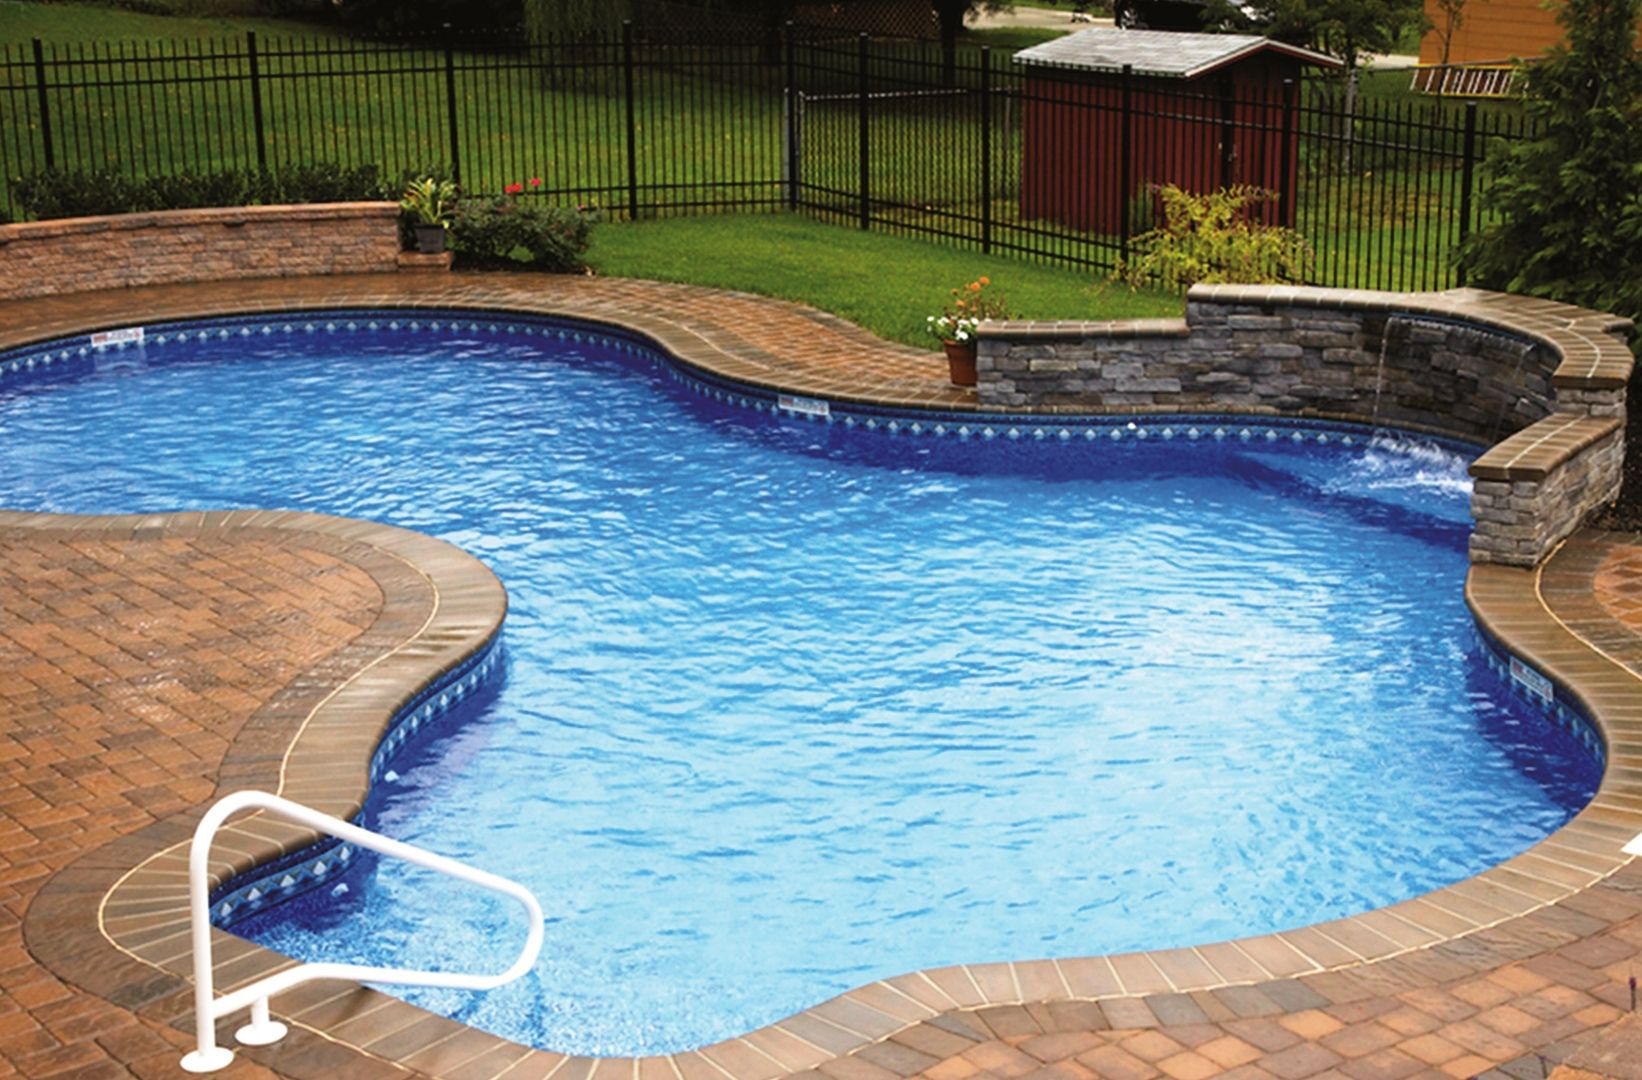 Back yard swimming pool ideas swimming pool design for Best small pool designs